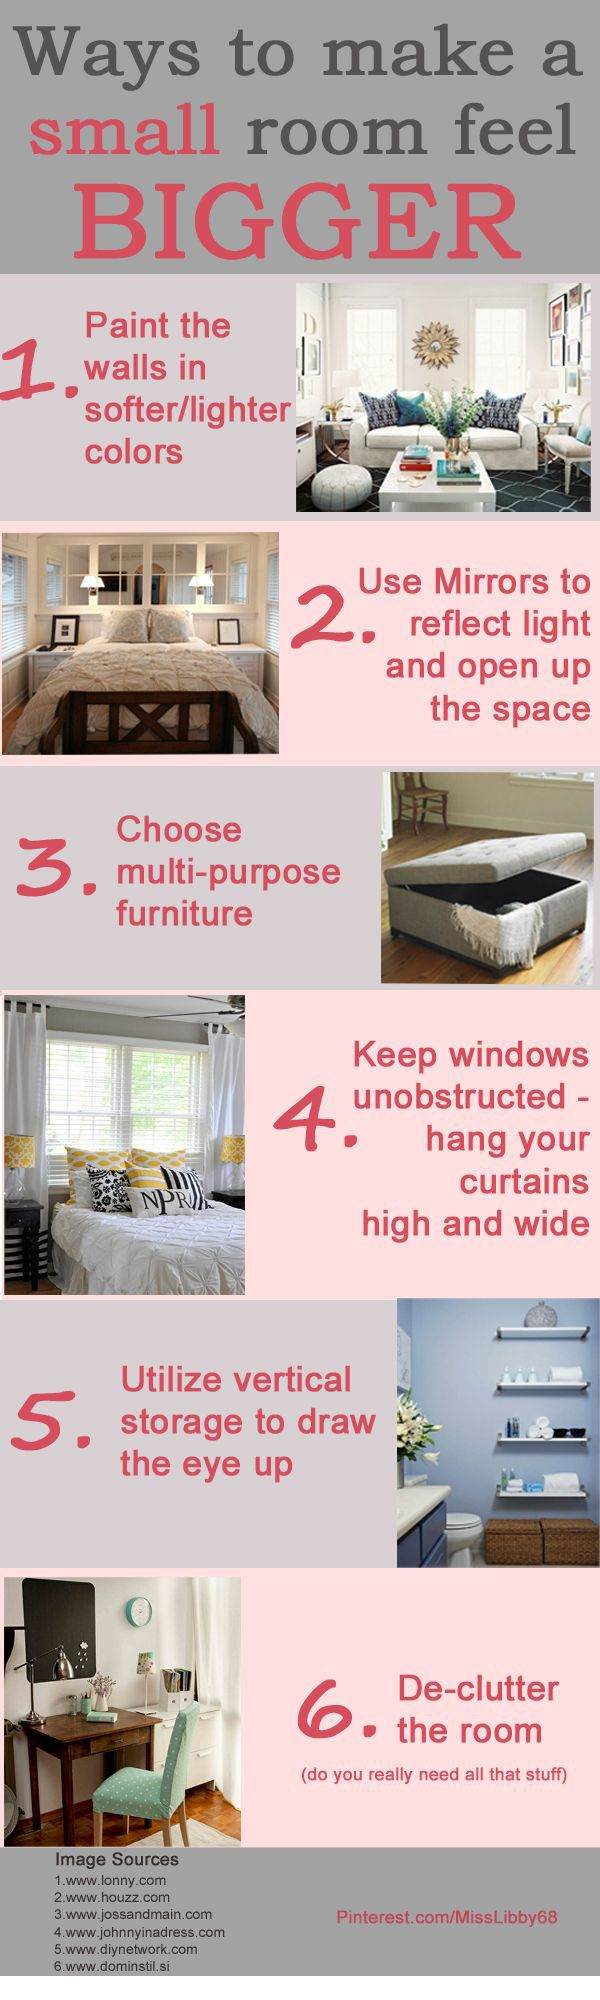 20 bedroom organization tips to make the most of a small space - Small Room Decor Pinterest